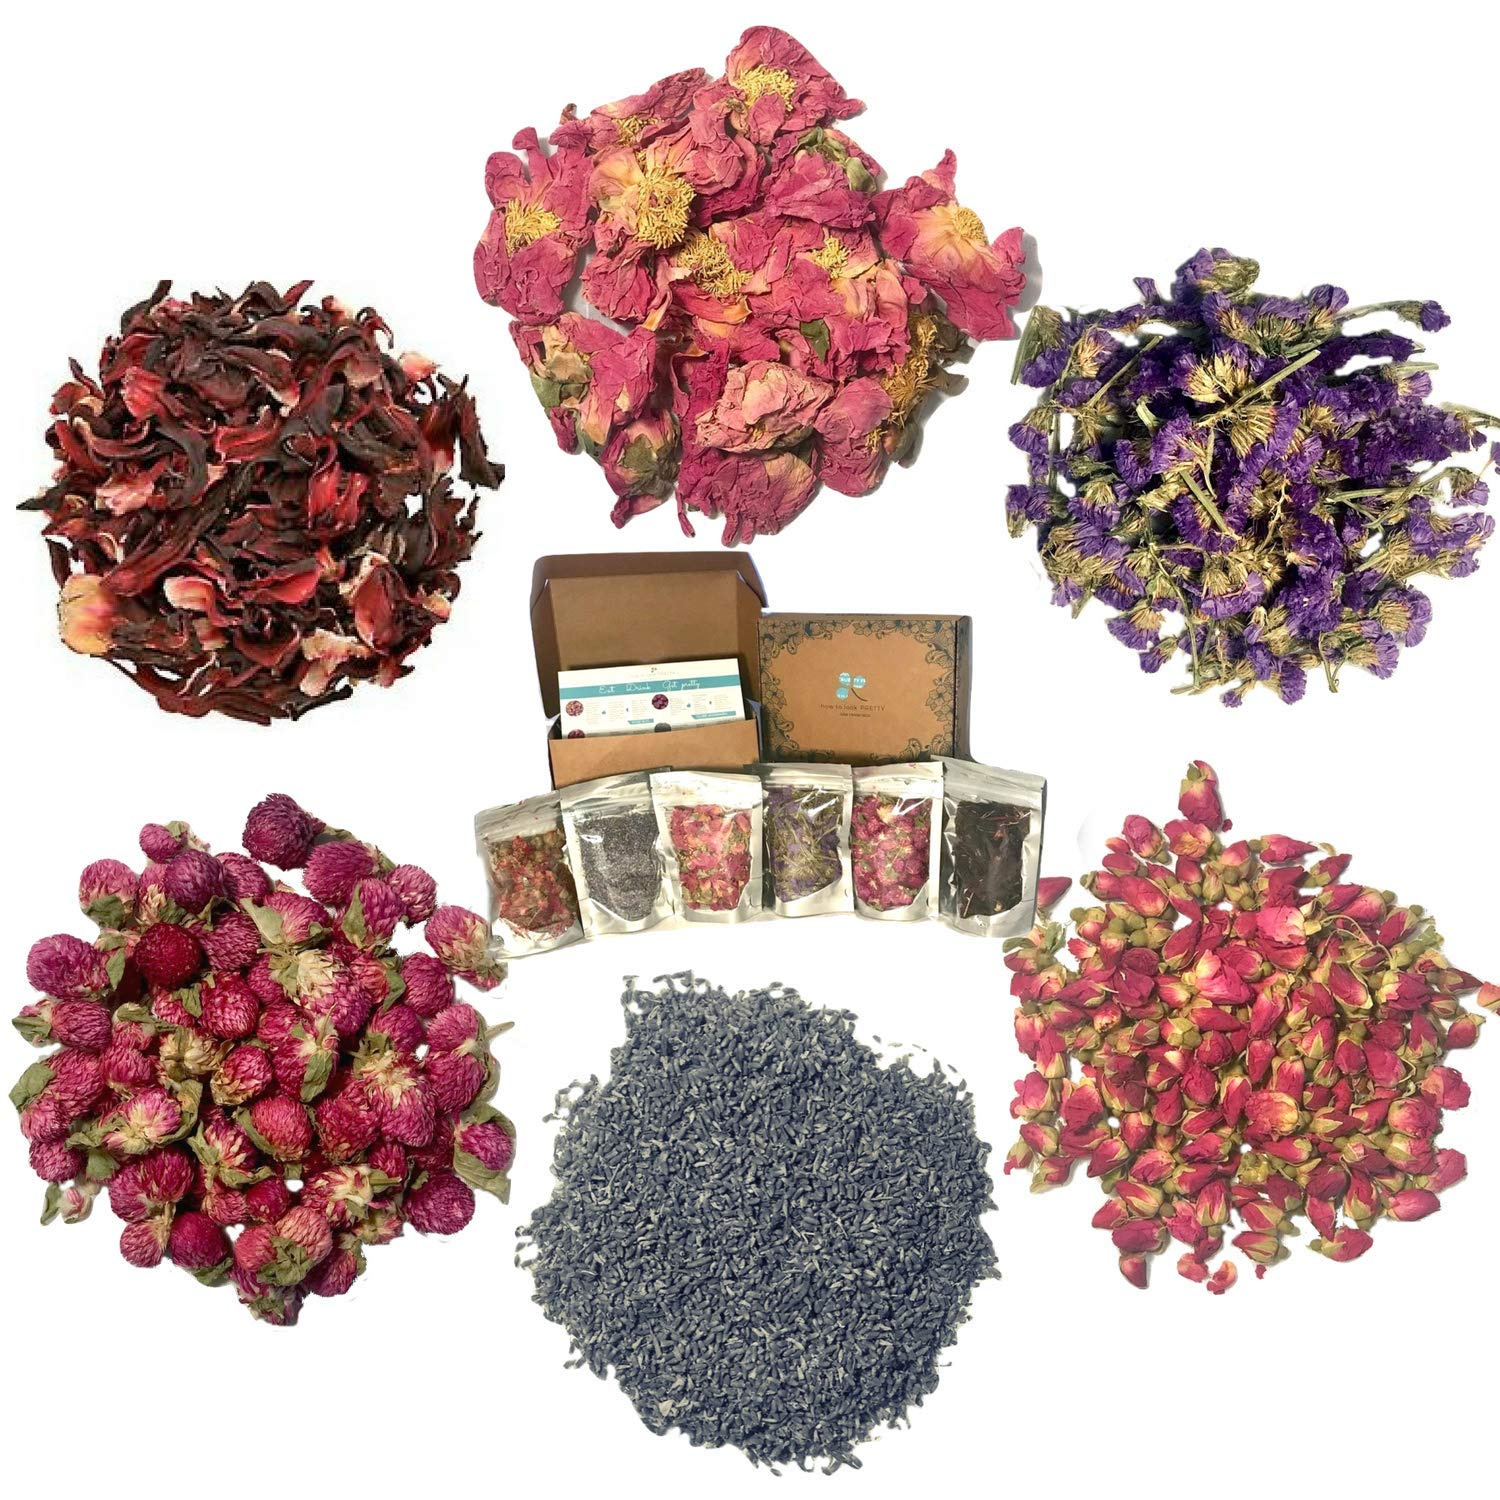 Vivacious Botanical Flower Sampler- Rose Bud, Lily, Satire, Peony - Dried Flowers Soap Making Kit - Bath Bomb Kit - Pressed Flowers Herbs for Resin -Melt and Pour Soap Suppliers -Bonus how to look PRETTY 4336900738